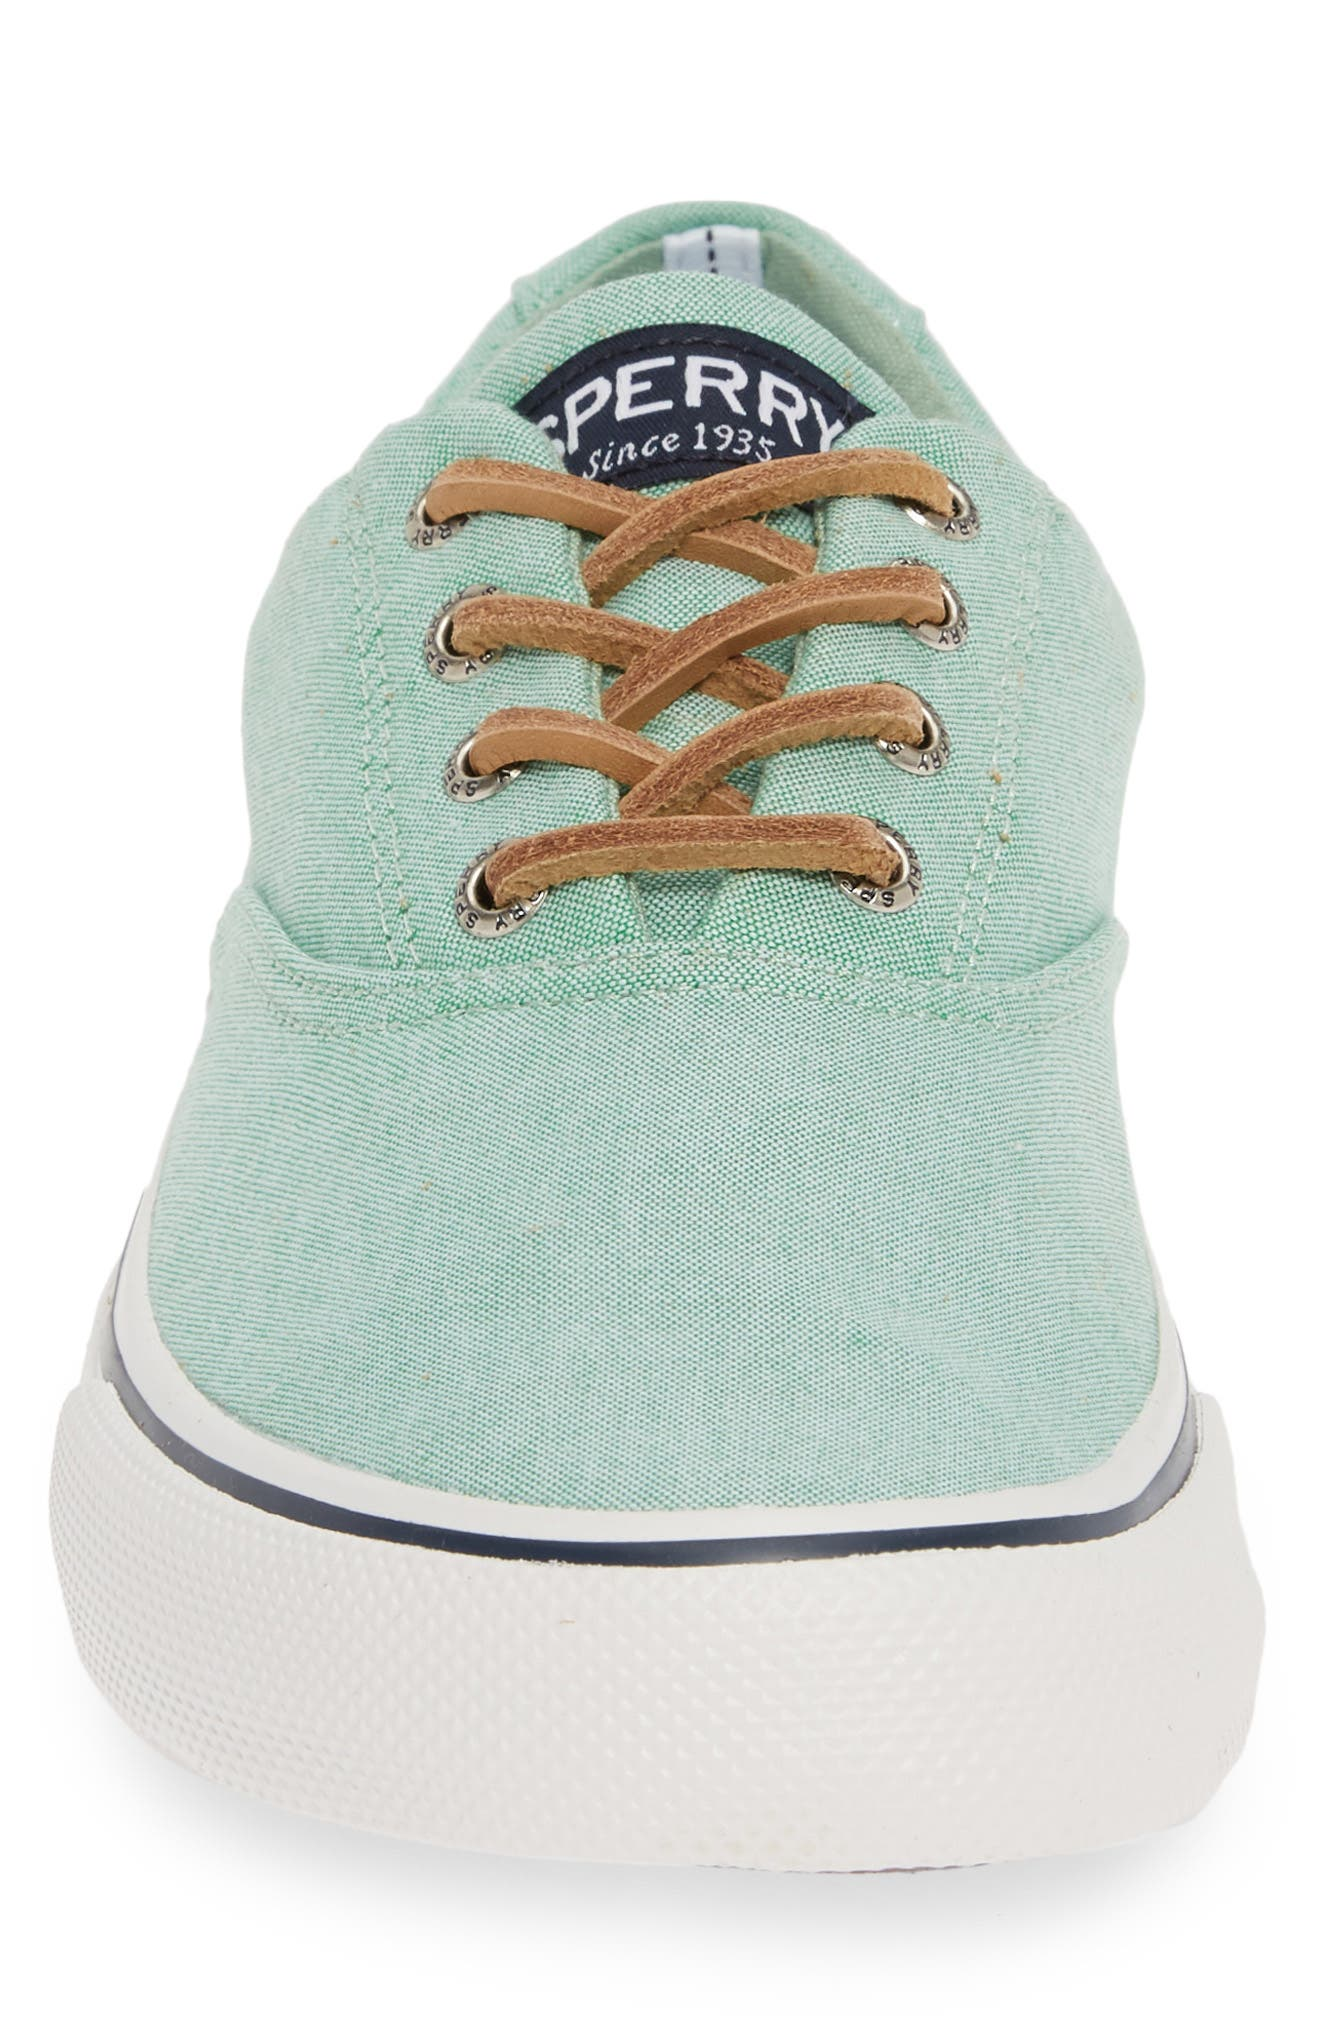 SPERRY, Striper II CVO Oxford Sneaker, Alternate thumbnail 4, color, GREEN